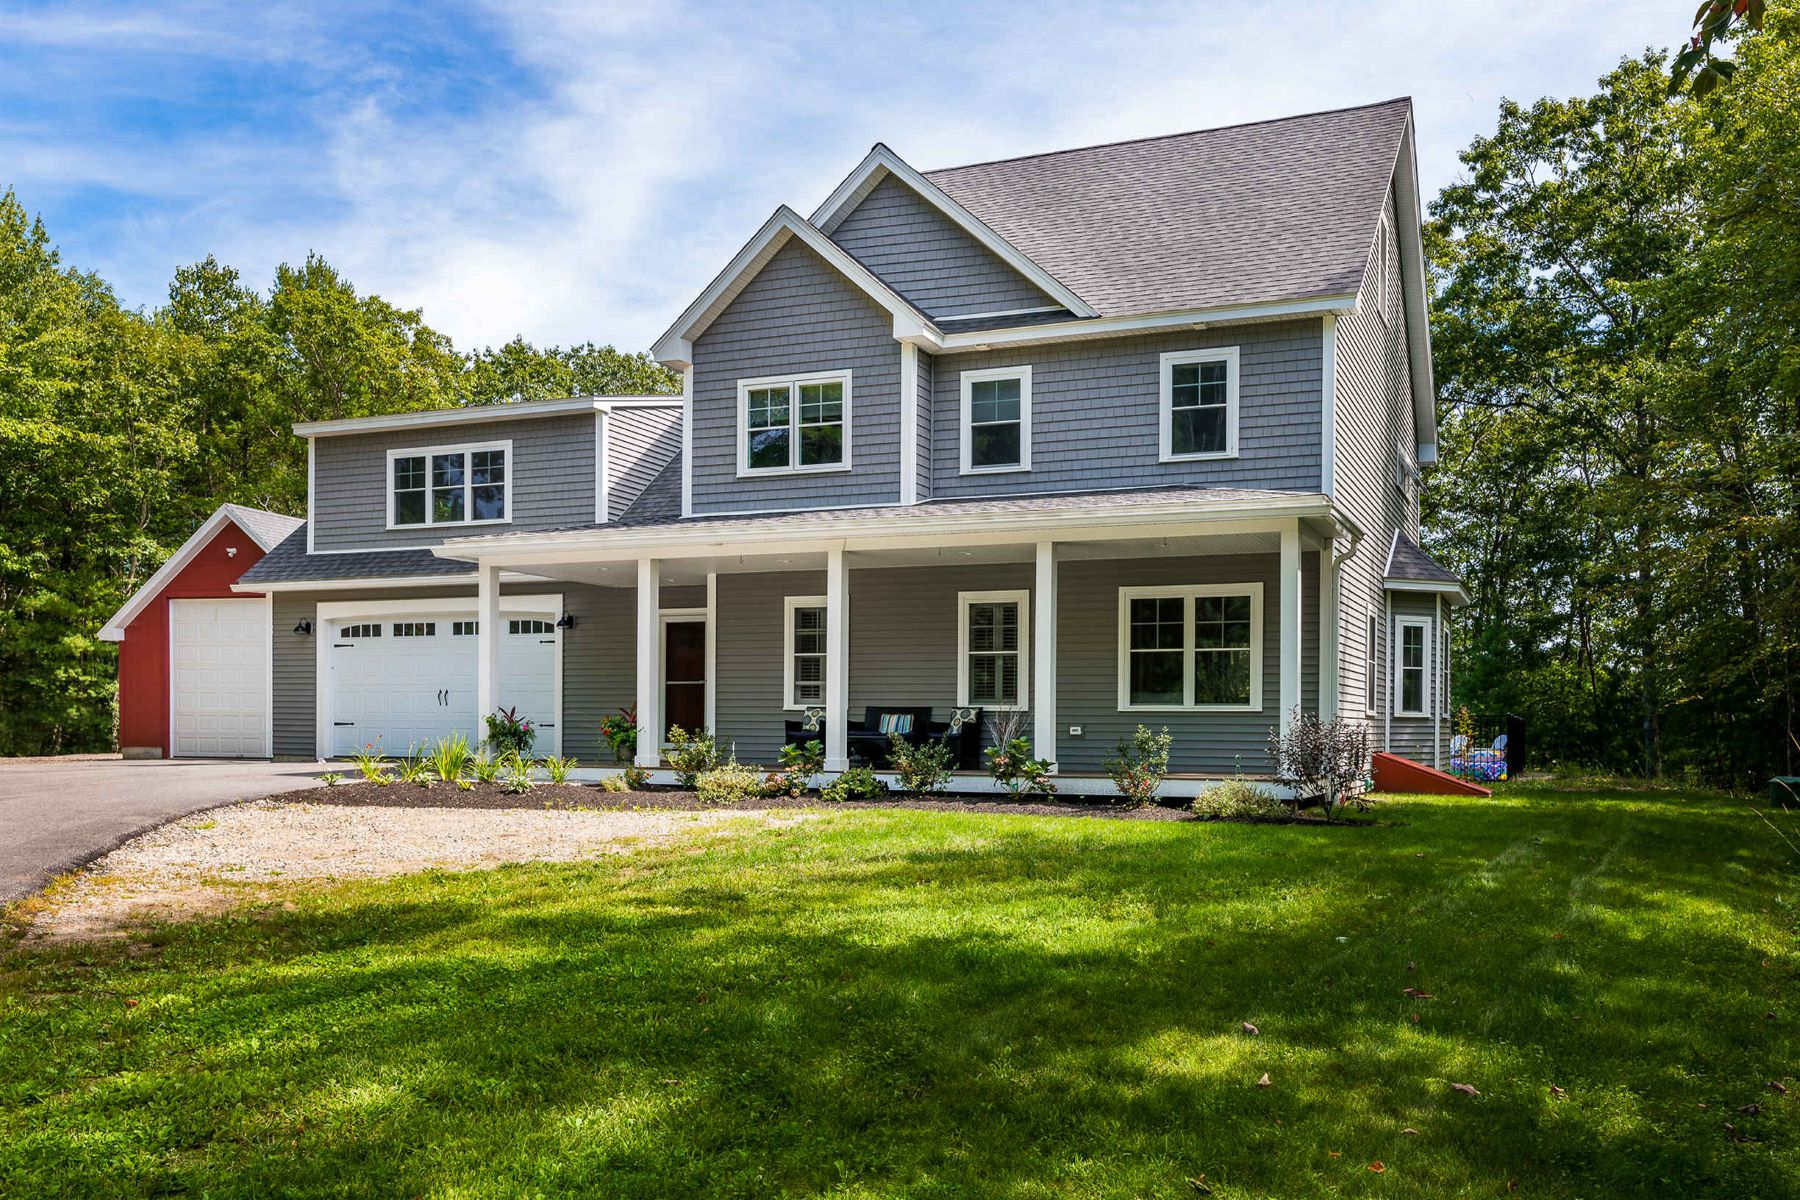 Single Family Homes for Sale at Custom Built Colonial Close to Beaches & Shops 12 Haley Road Arundel, Maine 04046 United States